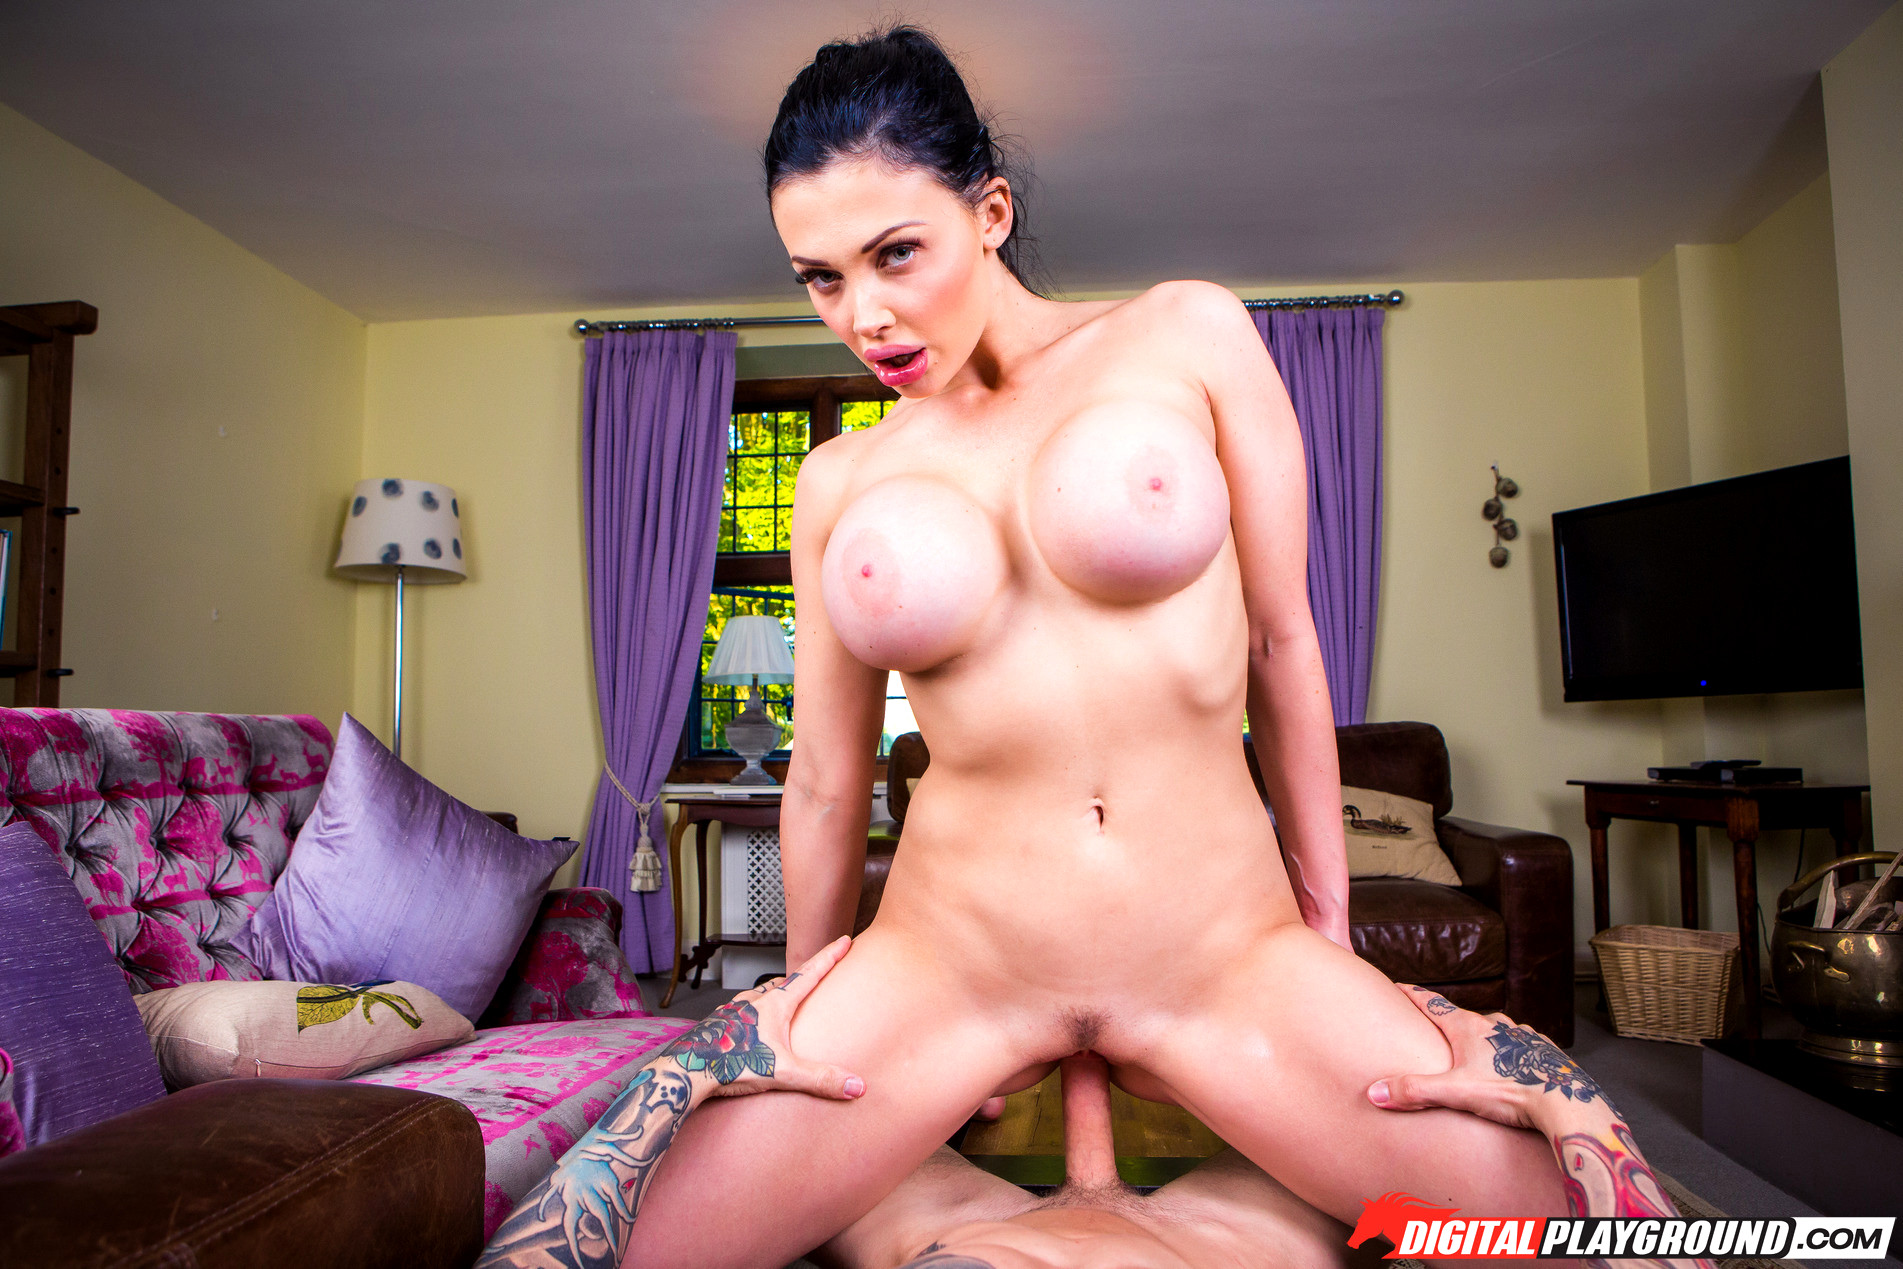 aletta ocean hardcore doggystyle Search - XNXXCOM